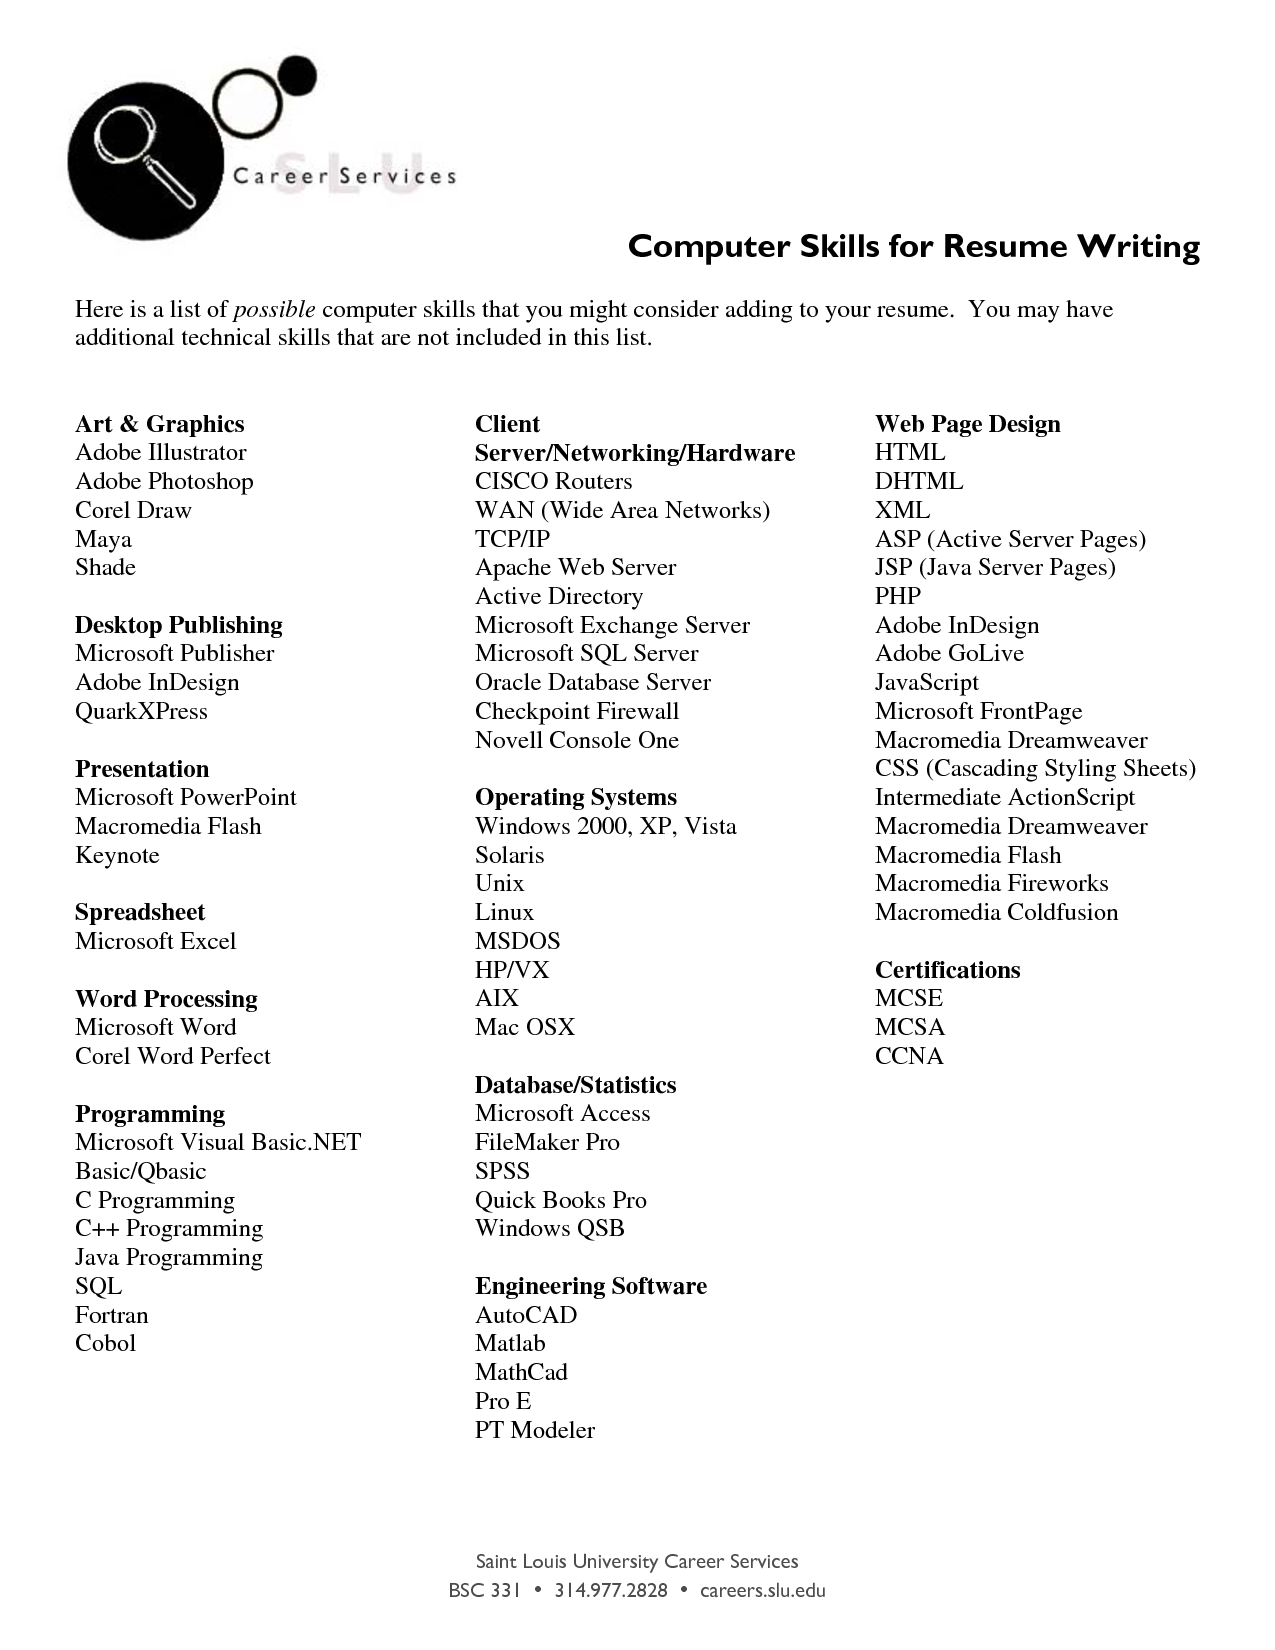 Technical Skills For Resume Listing Computer Skills On Resume  Httpwwwresumecareer